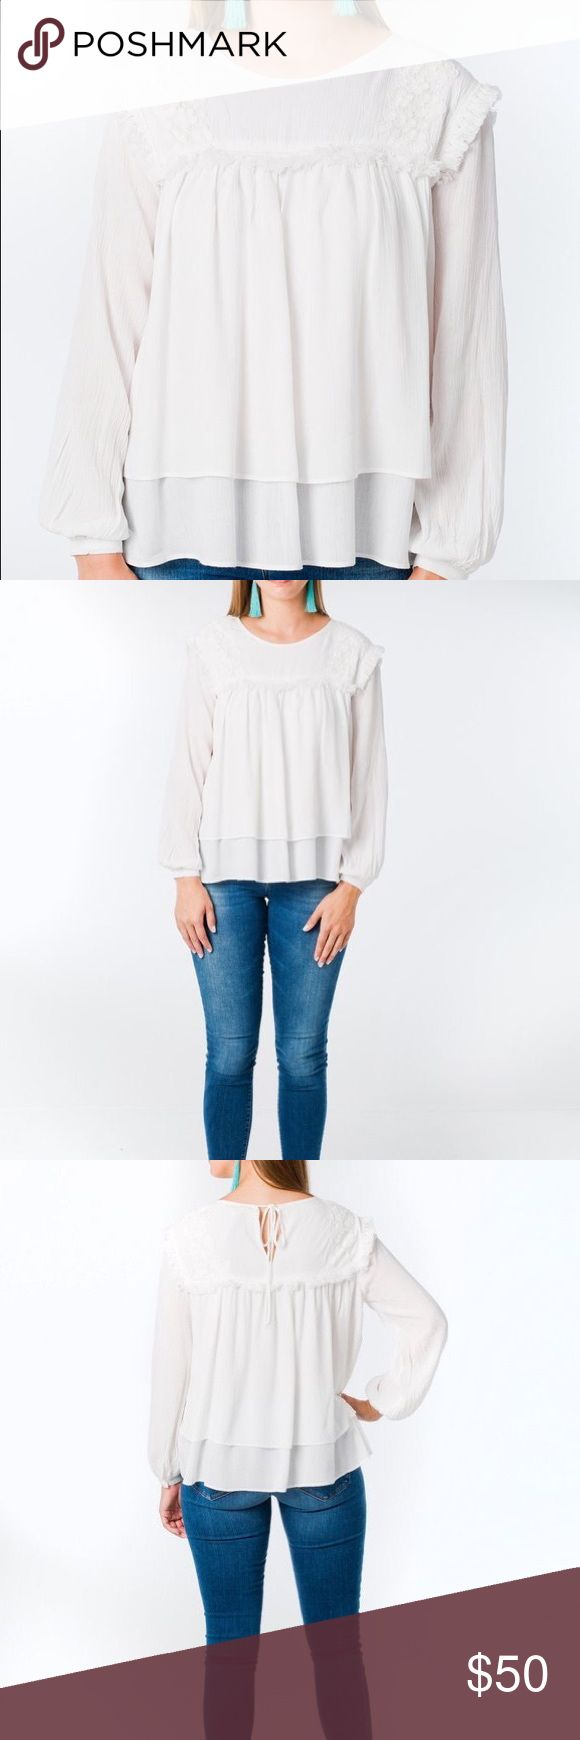 English Factory Fringe Blouse Breezy, crisp white blouse with fringe and lace accents. Fits true to size. Perfect for any season! English Factory Tops Blouses